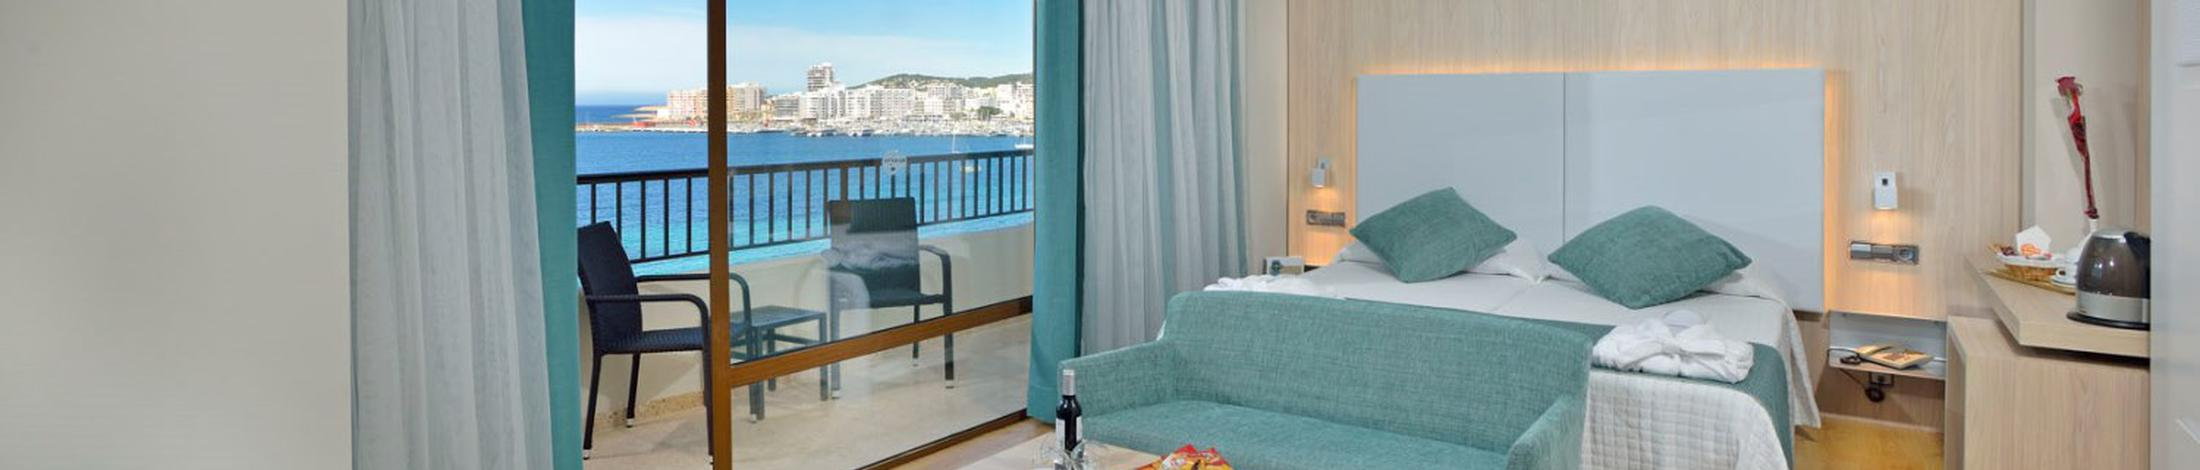 Camera premium vista hotel alua hawaii ibiza san antonio